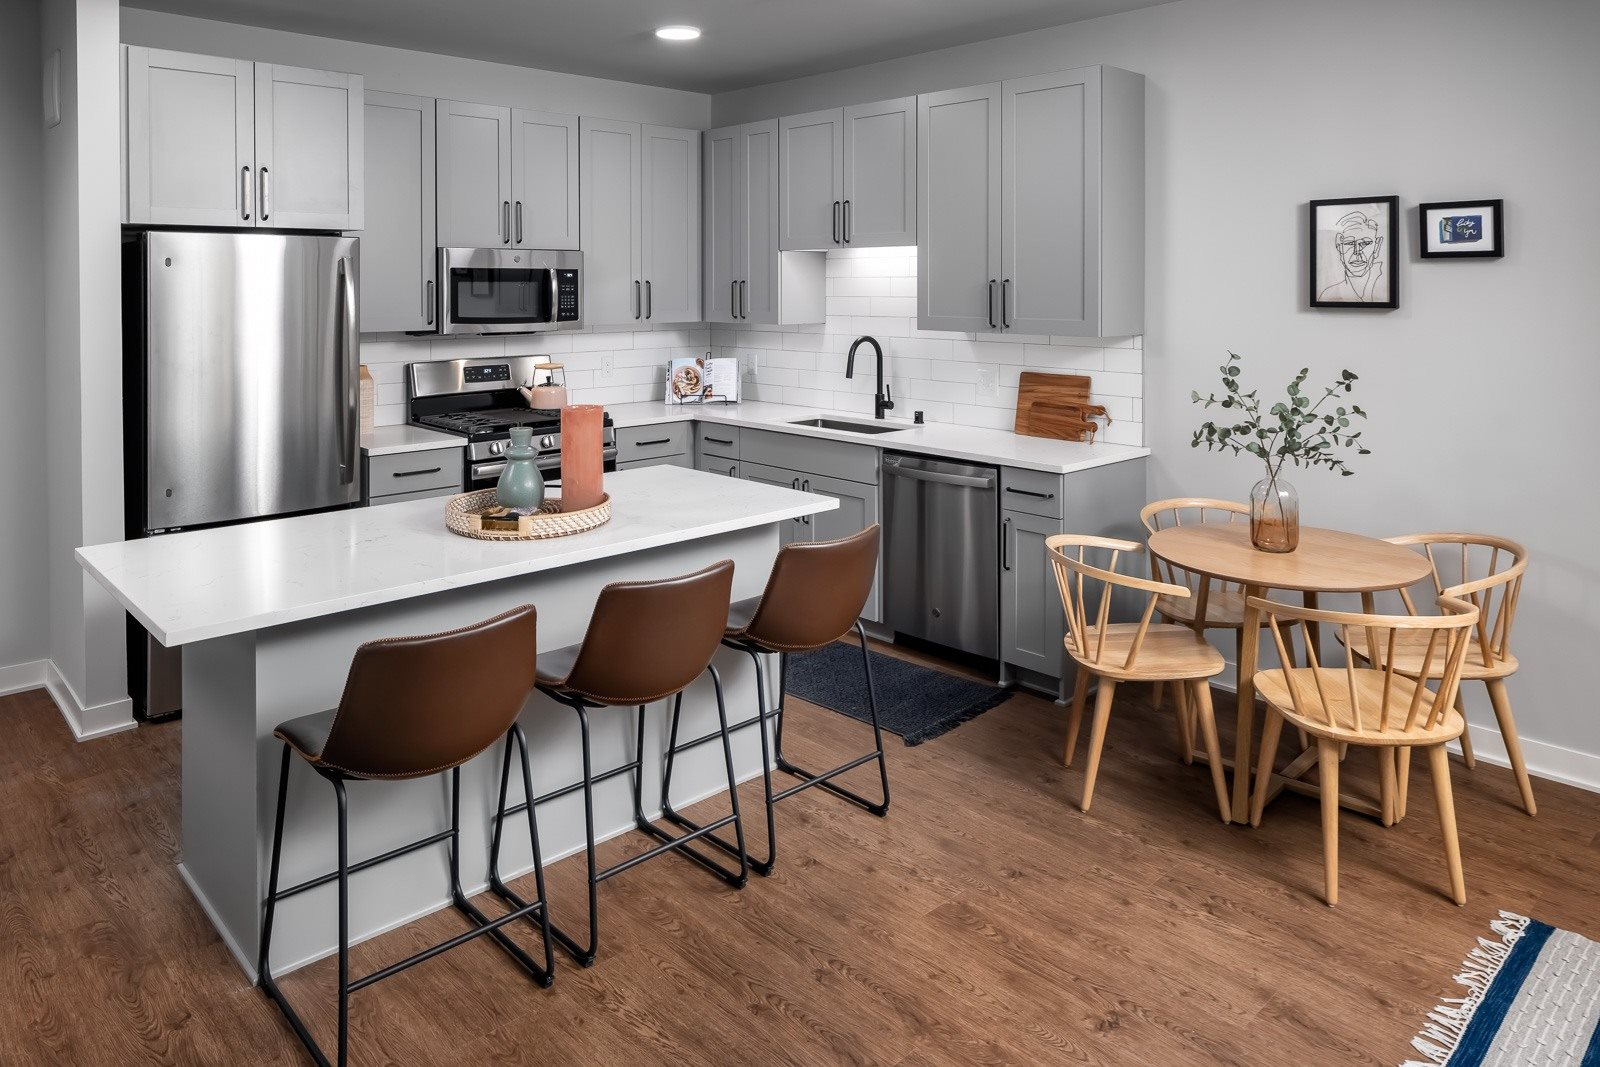 One bedroom apartment kitchen with stainless steel appliances